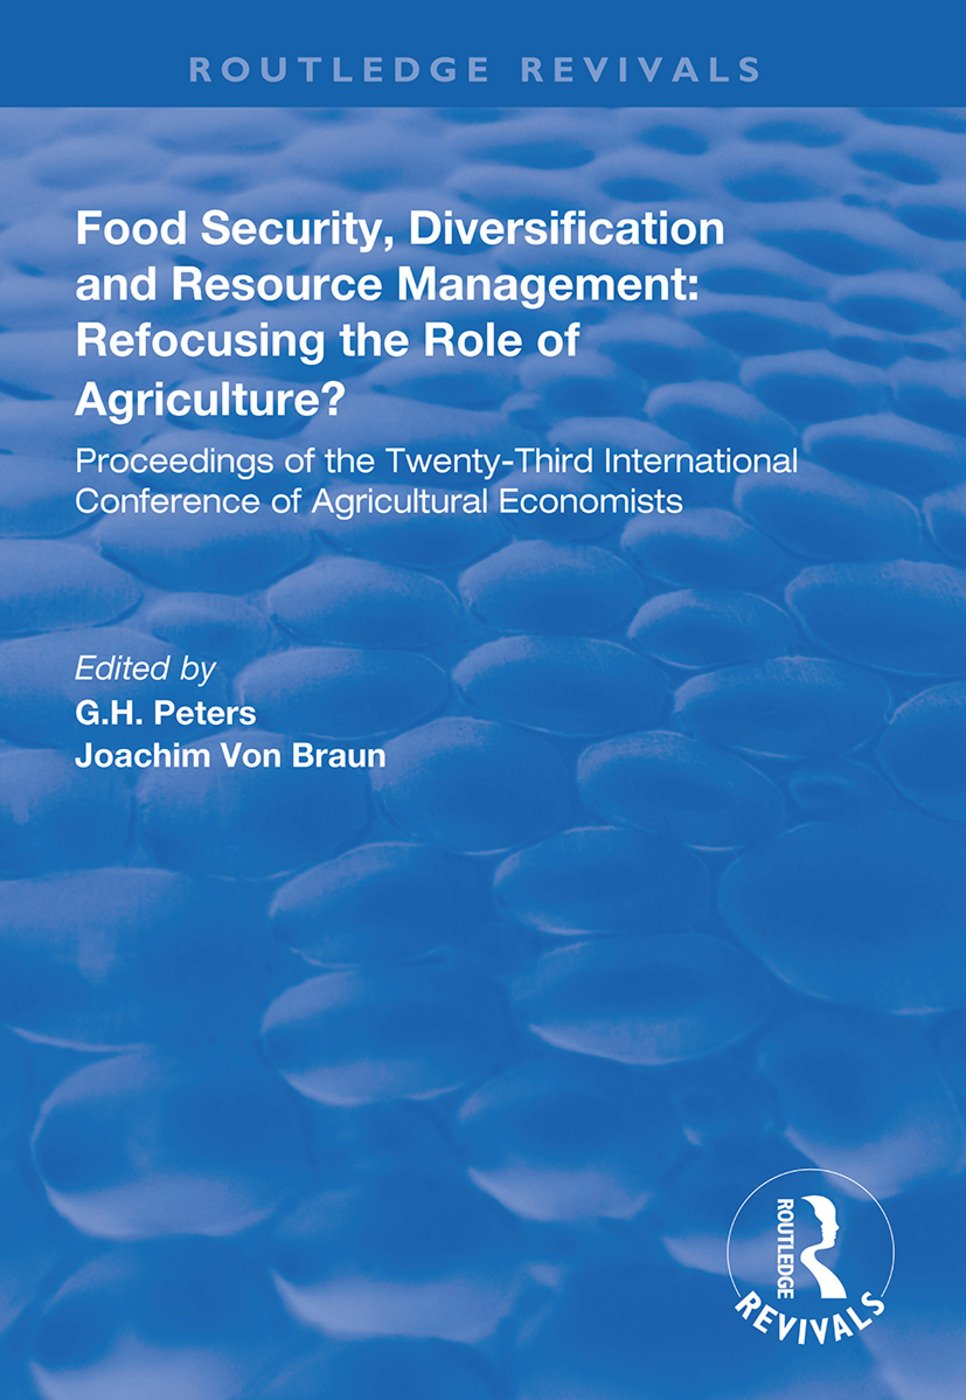 Food Security, Diversification and Resource Management: Refocusing the Role of Agriculture?: Proceedings of the Twenty-Third International Conference of Agricultural Economists book cover